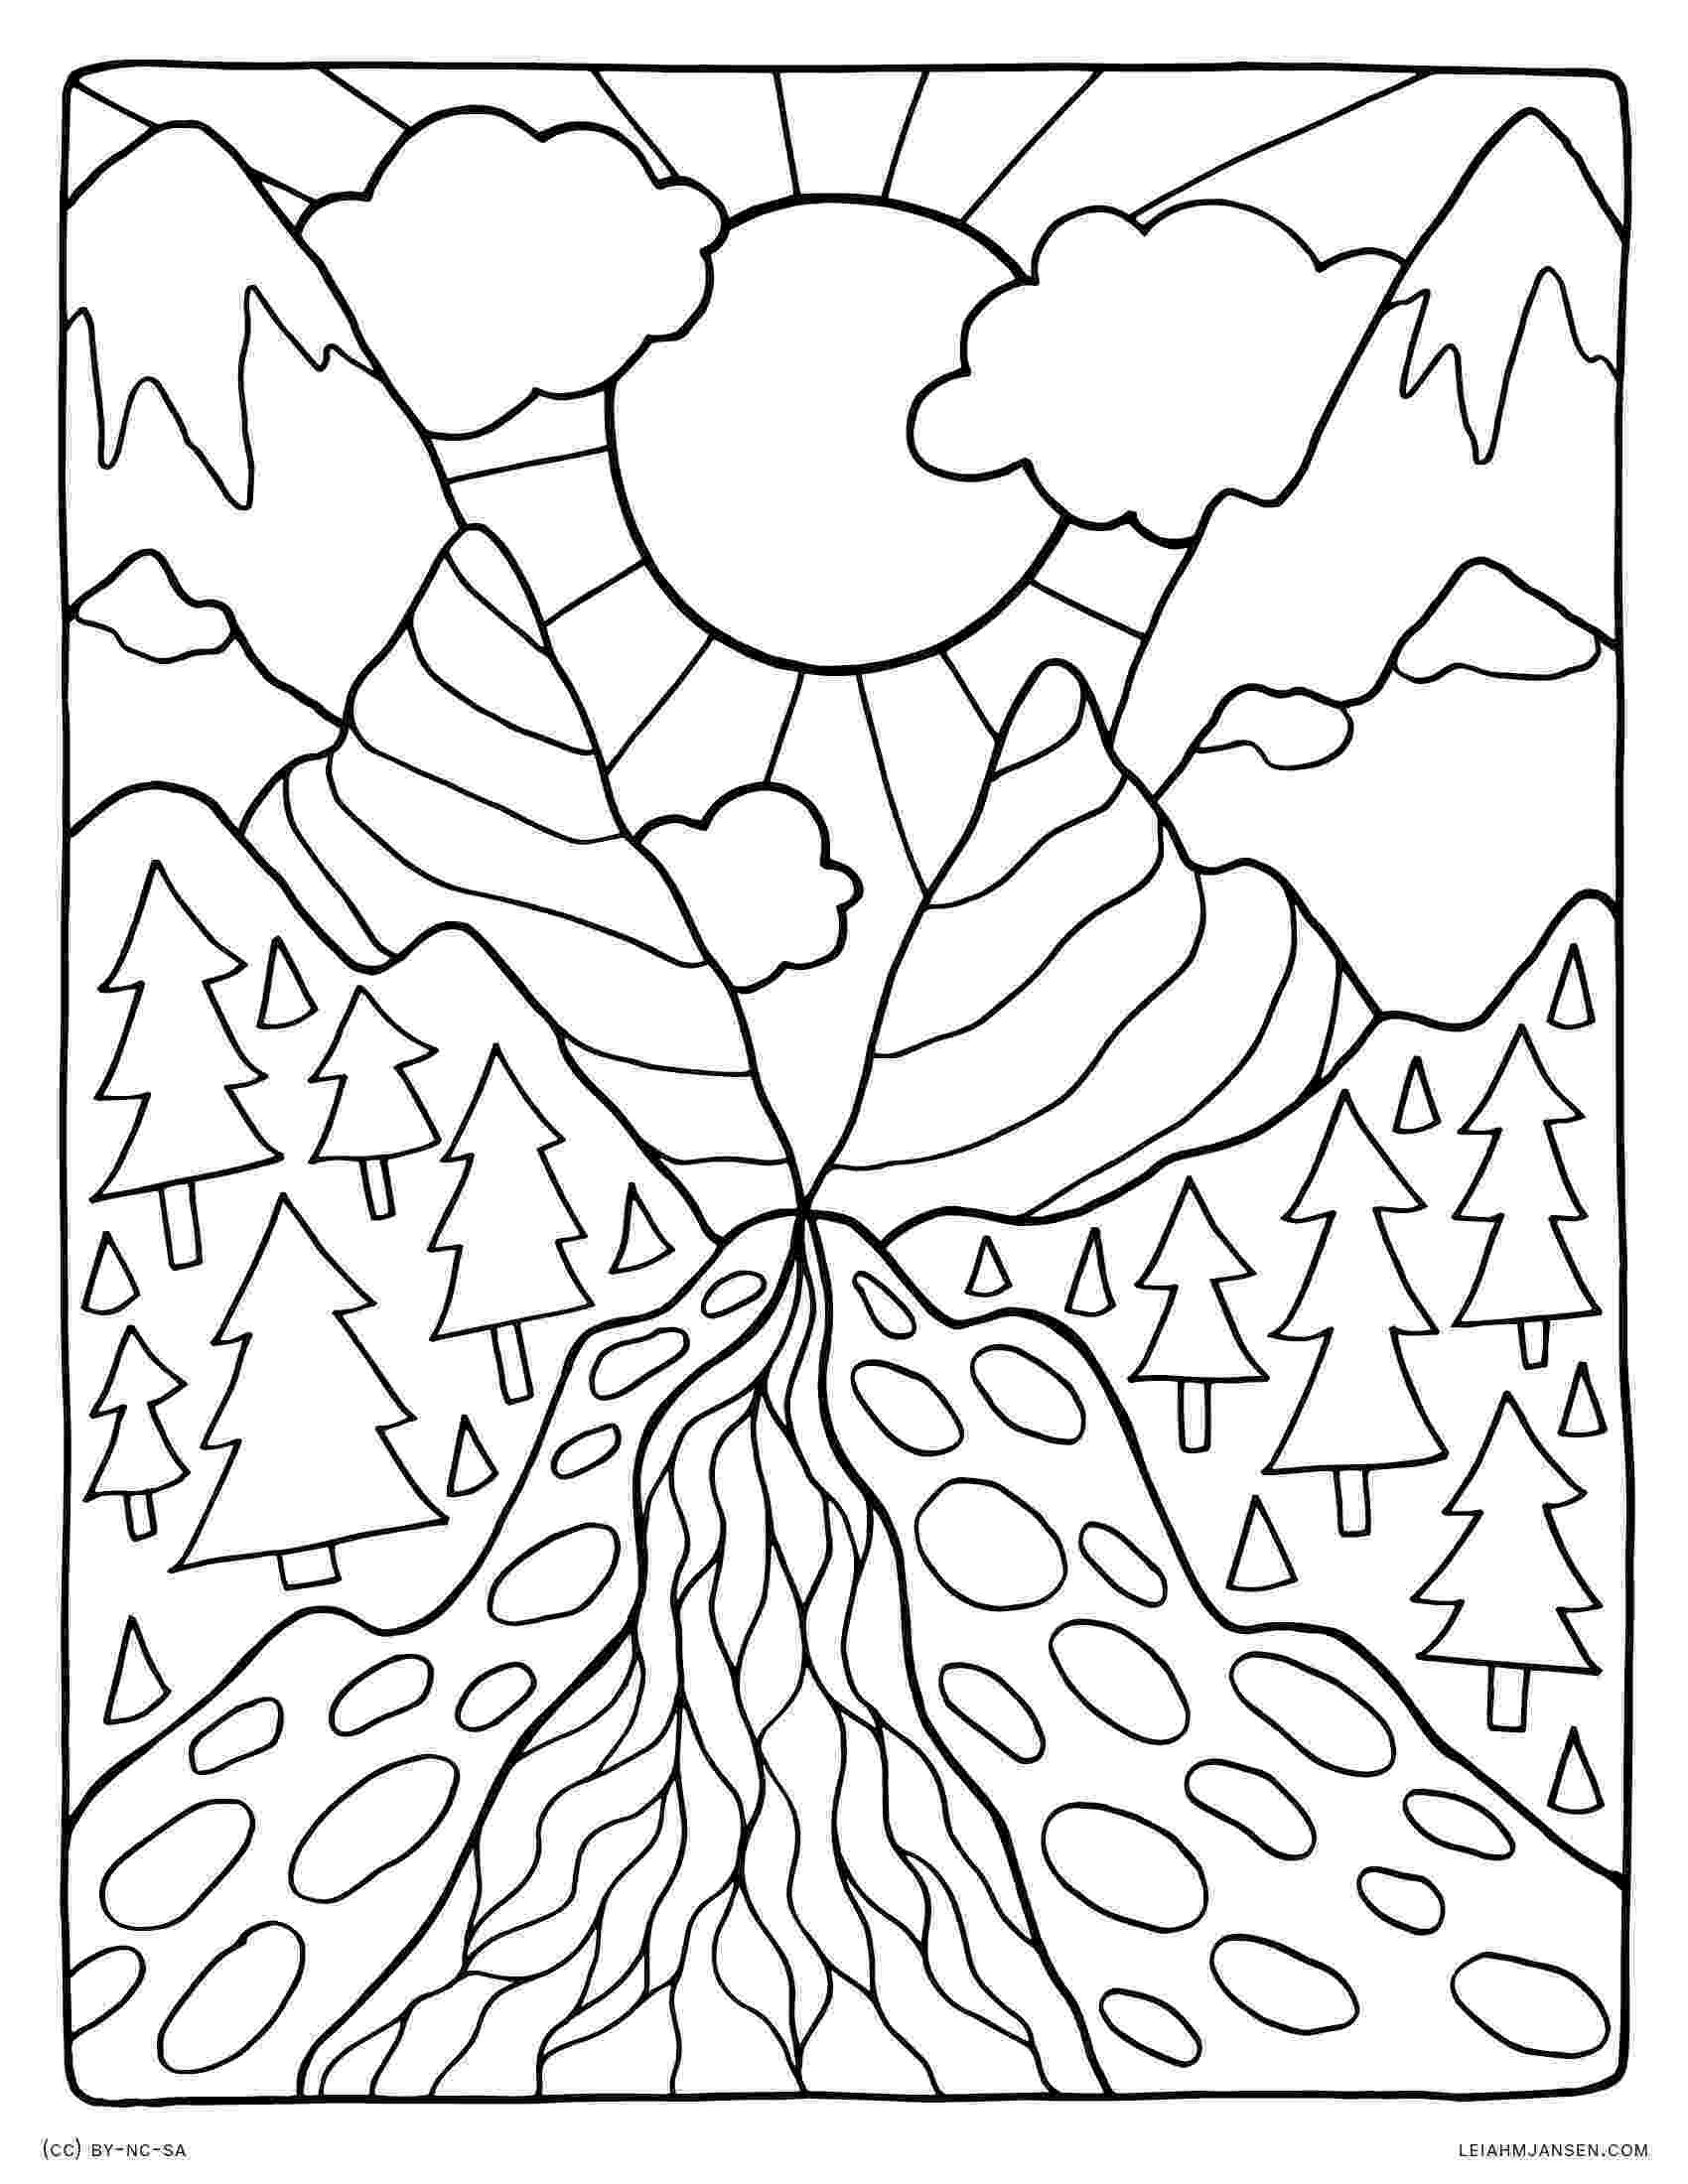 nature colouring pictures nature coloring pages for adults free printable nature colouring pictures